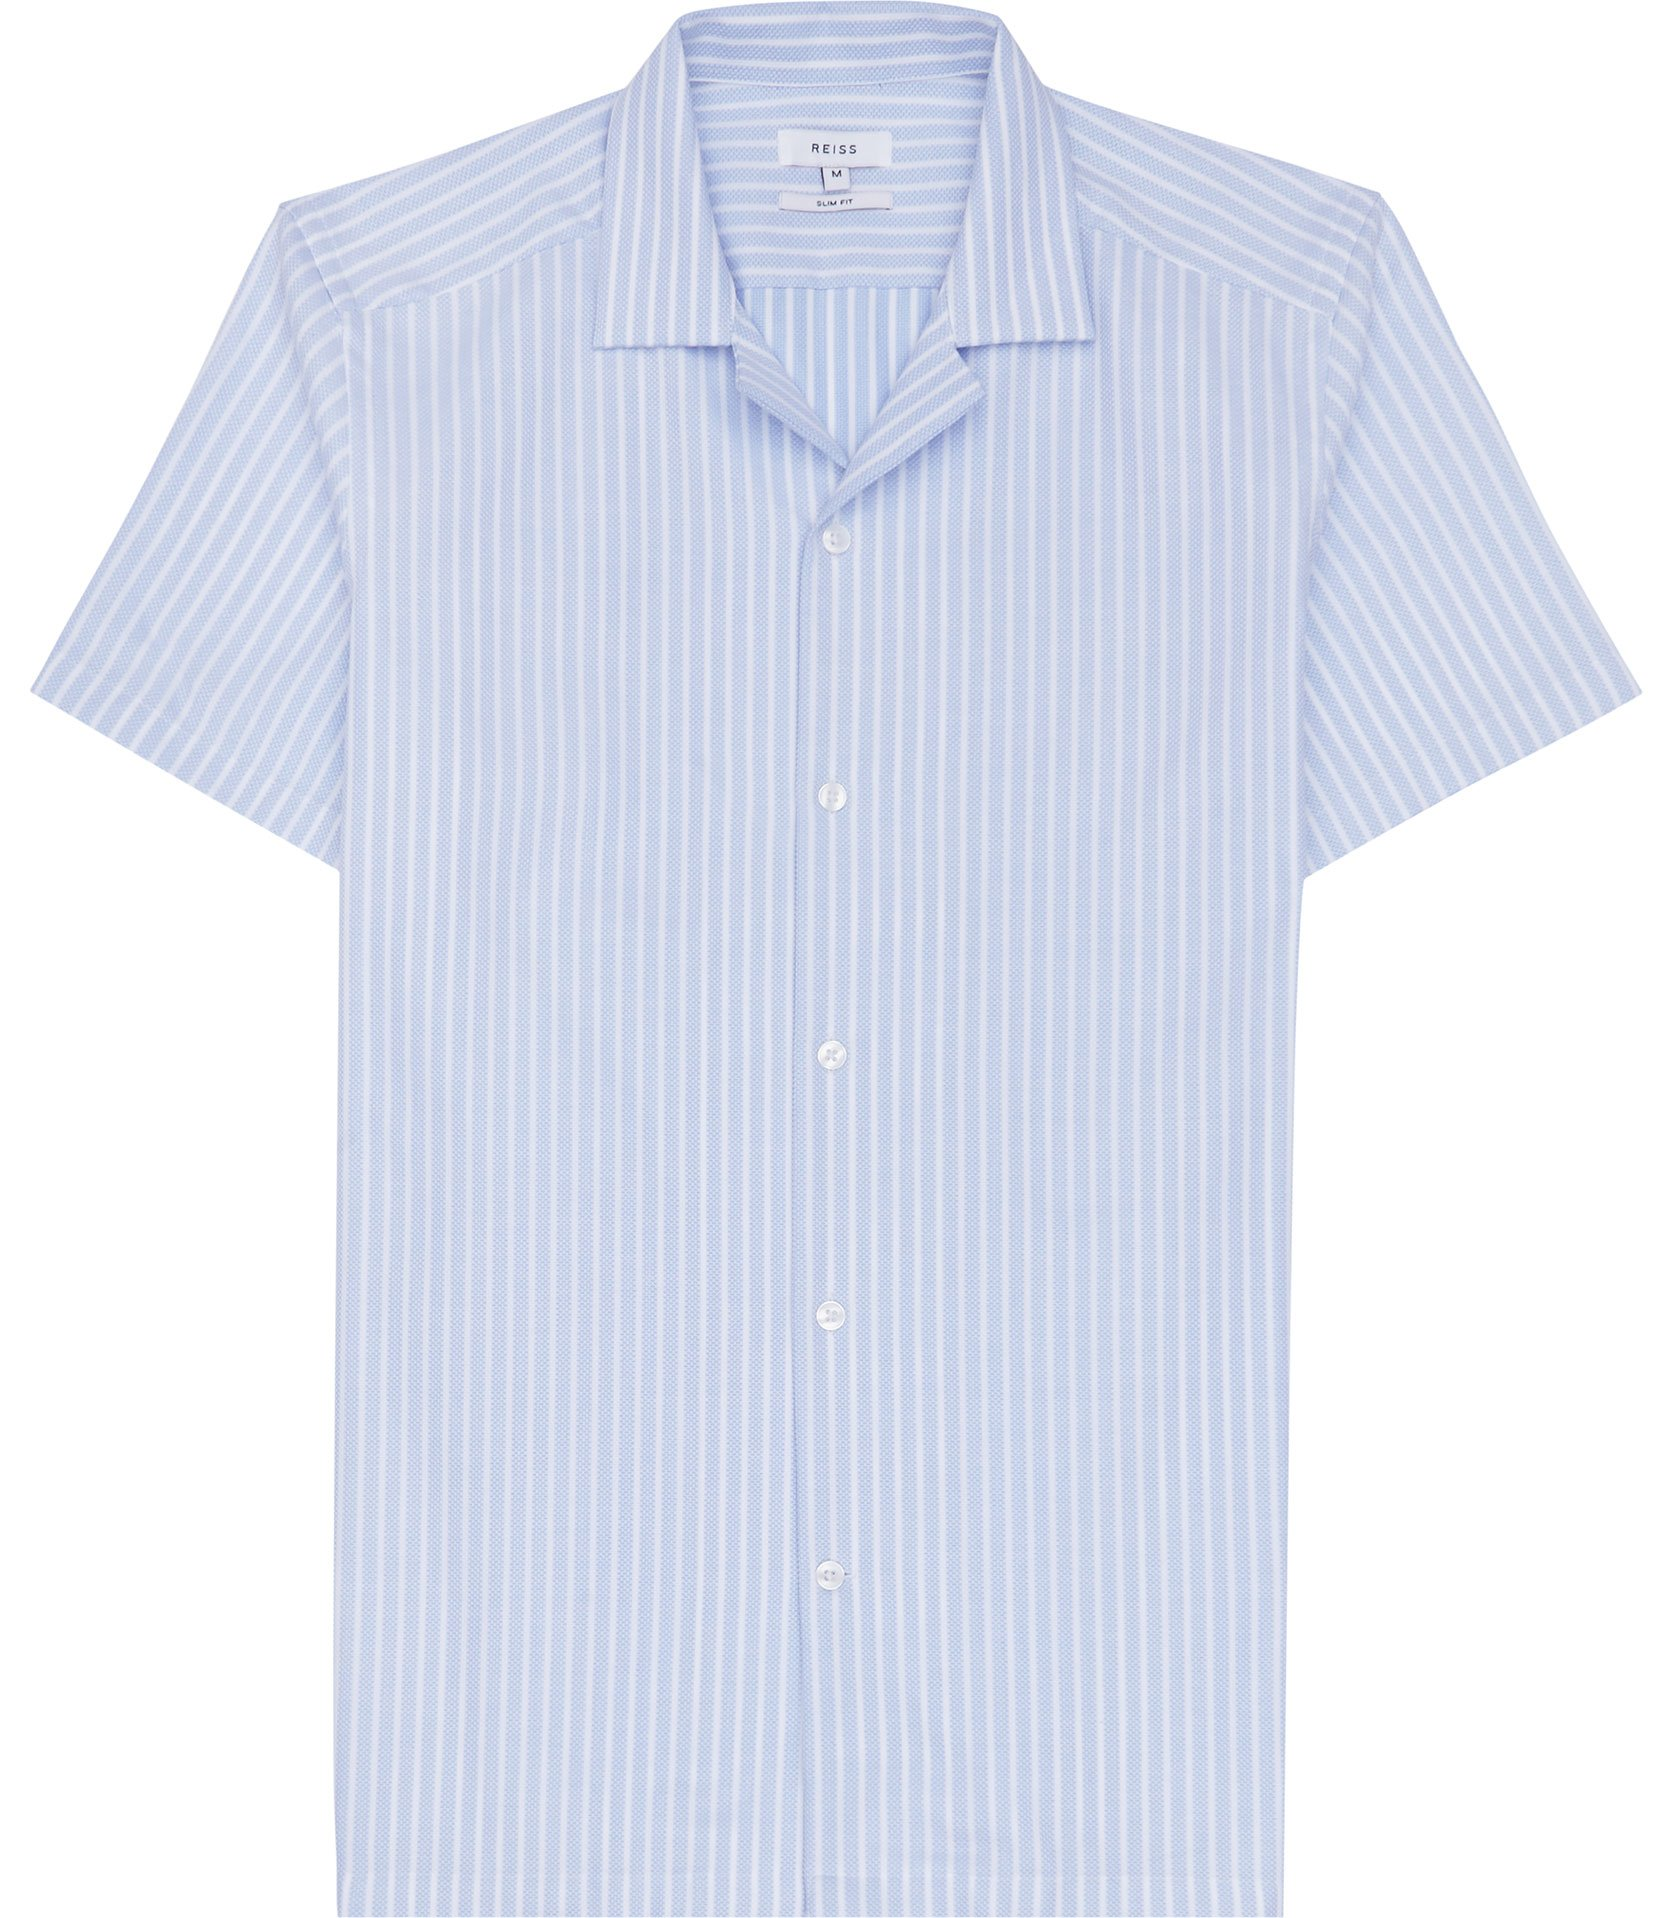 Reiss Light Blue Vixen Textured Stripe Shirt